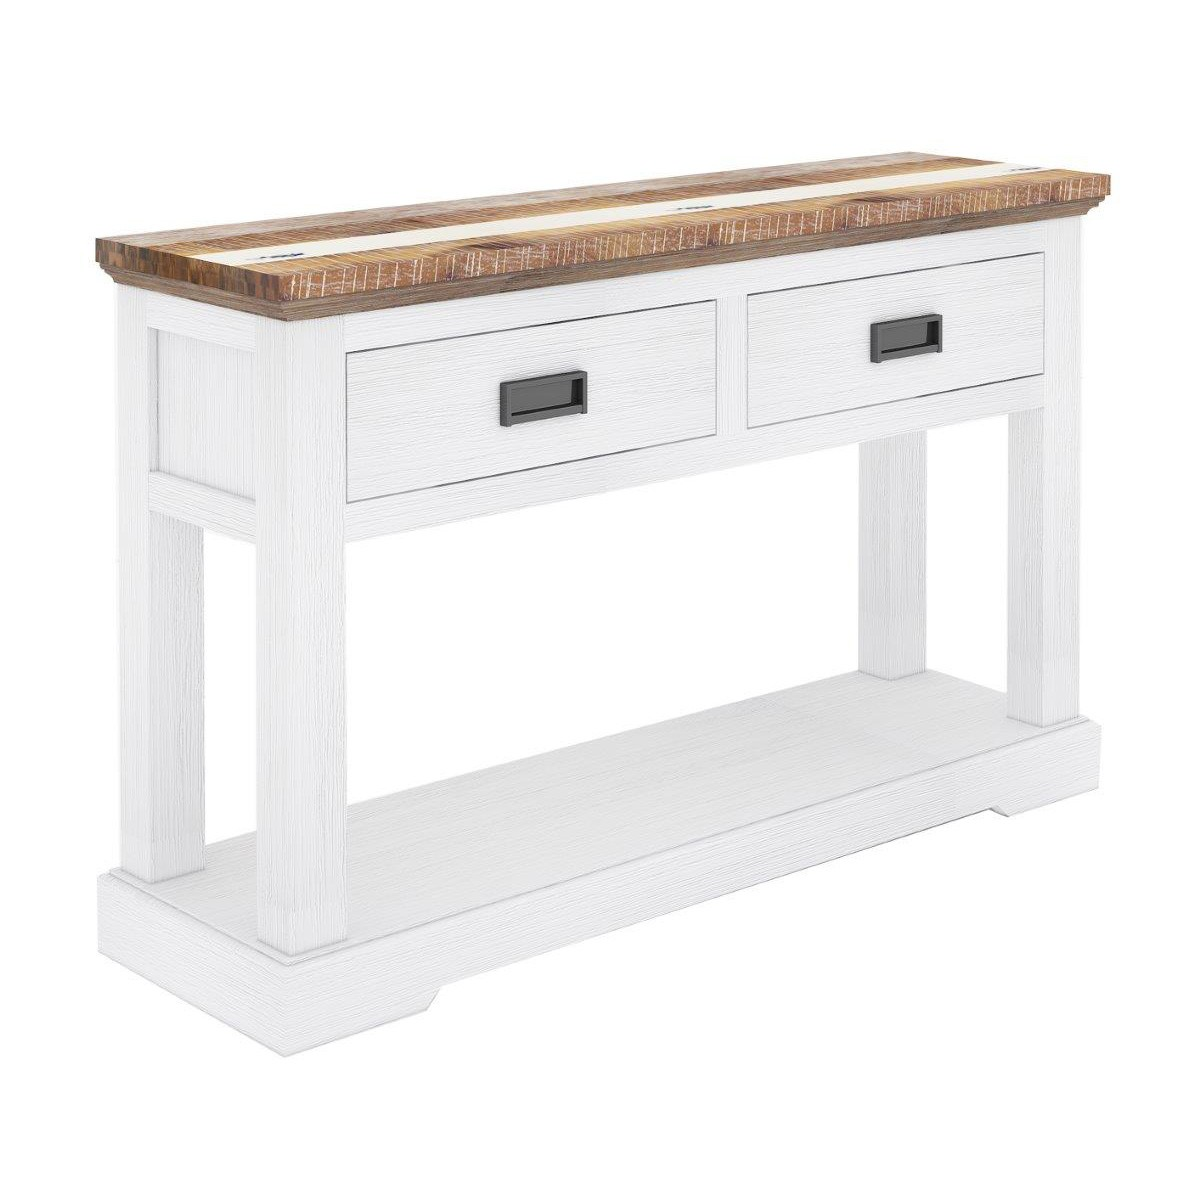 Largo Acacia Timber Console Table, 125cm